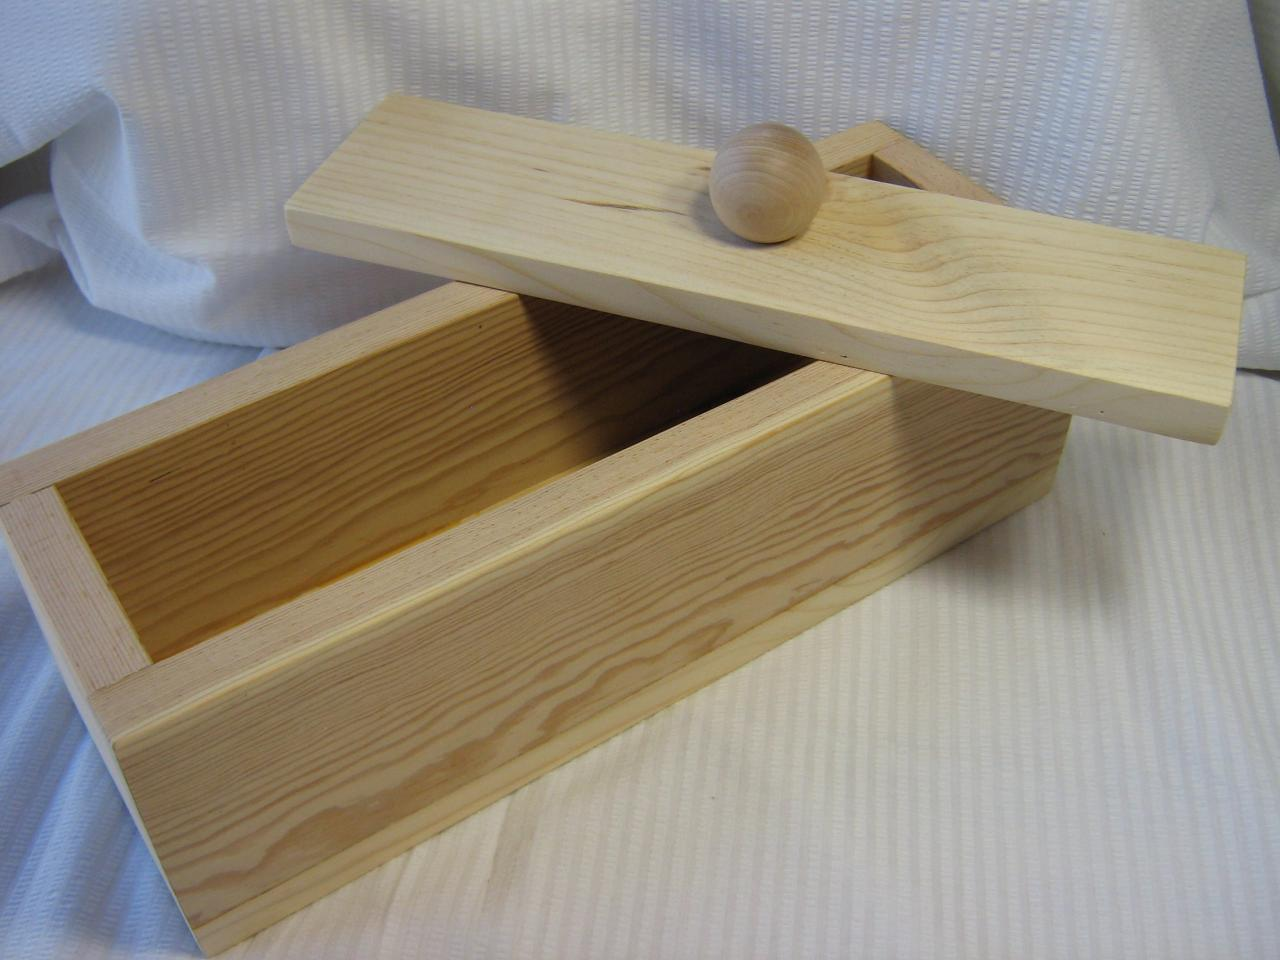 4 Pound Wood Soap Mold With Lid - Handmade in Colorado